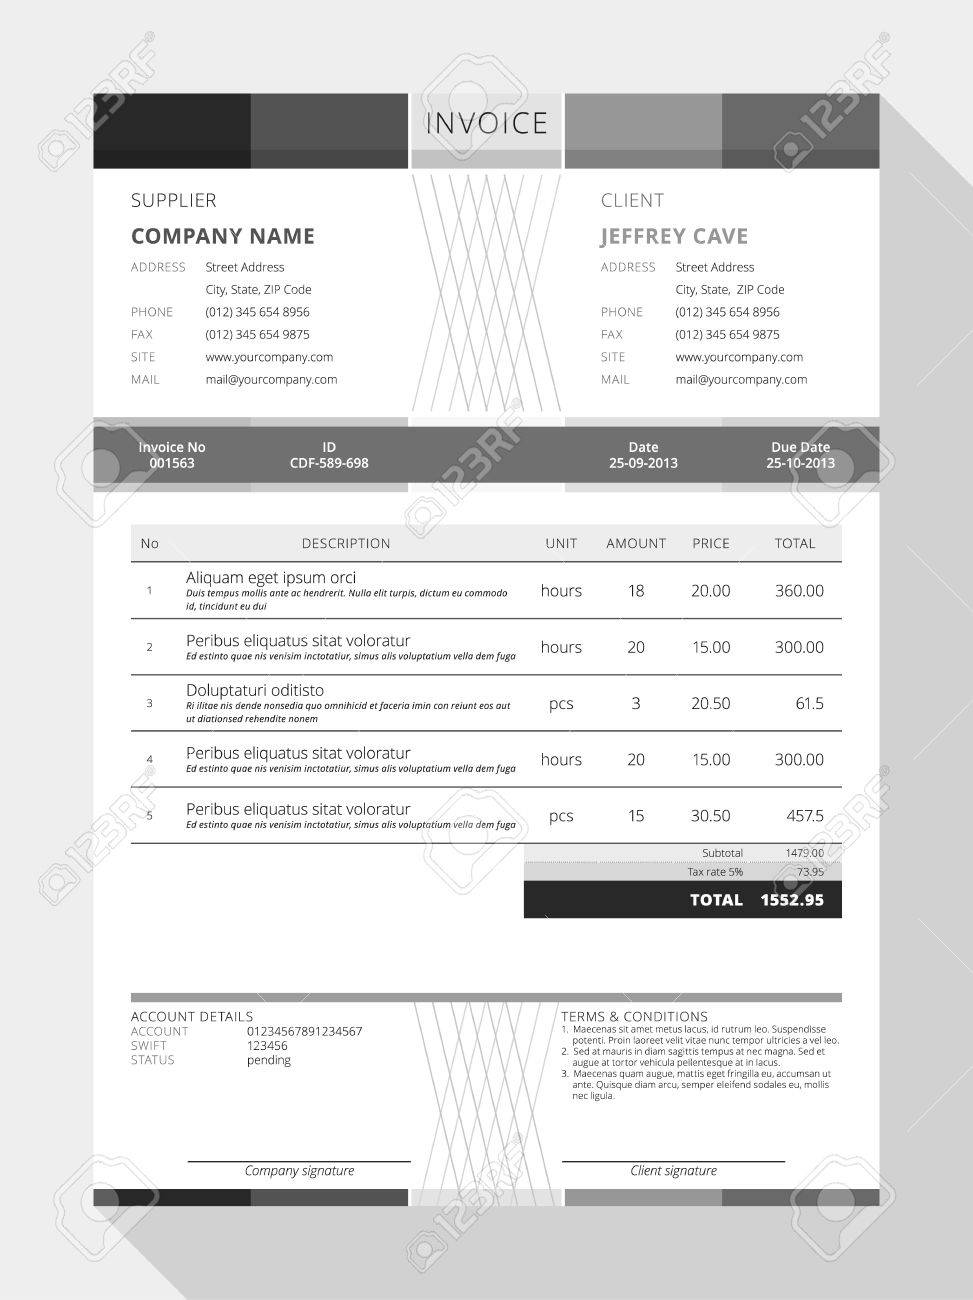 Hucareus  Pleasant Design An Invoice  Professional Graphic Design Invoice  With Exciting Vector Customizable Invoice Form Template Design Vector   Design An Invoice With Extraordinary Best Receipt Organizer Also Post Office Receipt In Addition Basic Receipt Template And Residual Receipts As Well As Receipt Book Walgreens Additionally Receipts Templates From Happytomco With Hucareus  Exciting Design An Invoice  Professional Graphic Design Invoice  With Extraordinary Vector Customizable Invoice Form Template Design Vector   Design An Invoice And Pleasant Best Receipt Organizer Also Post Office Receipt In Addition Basic Receipt Template From Happytomco